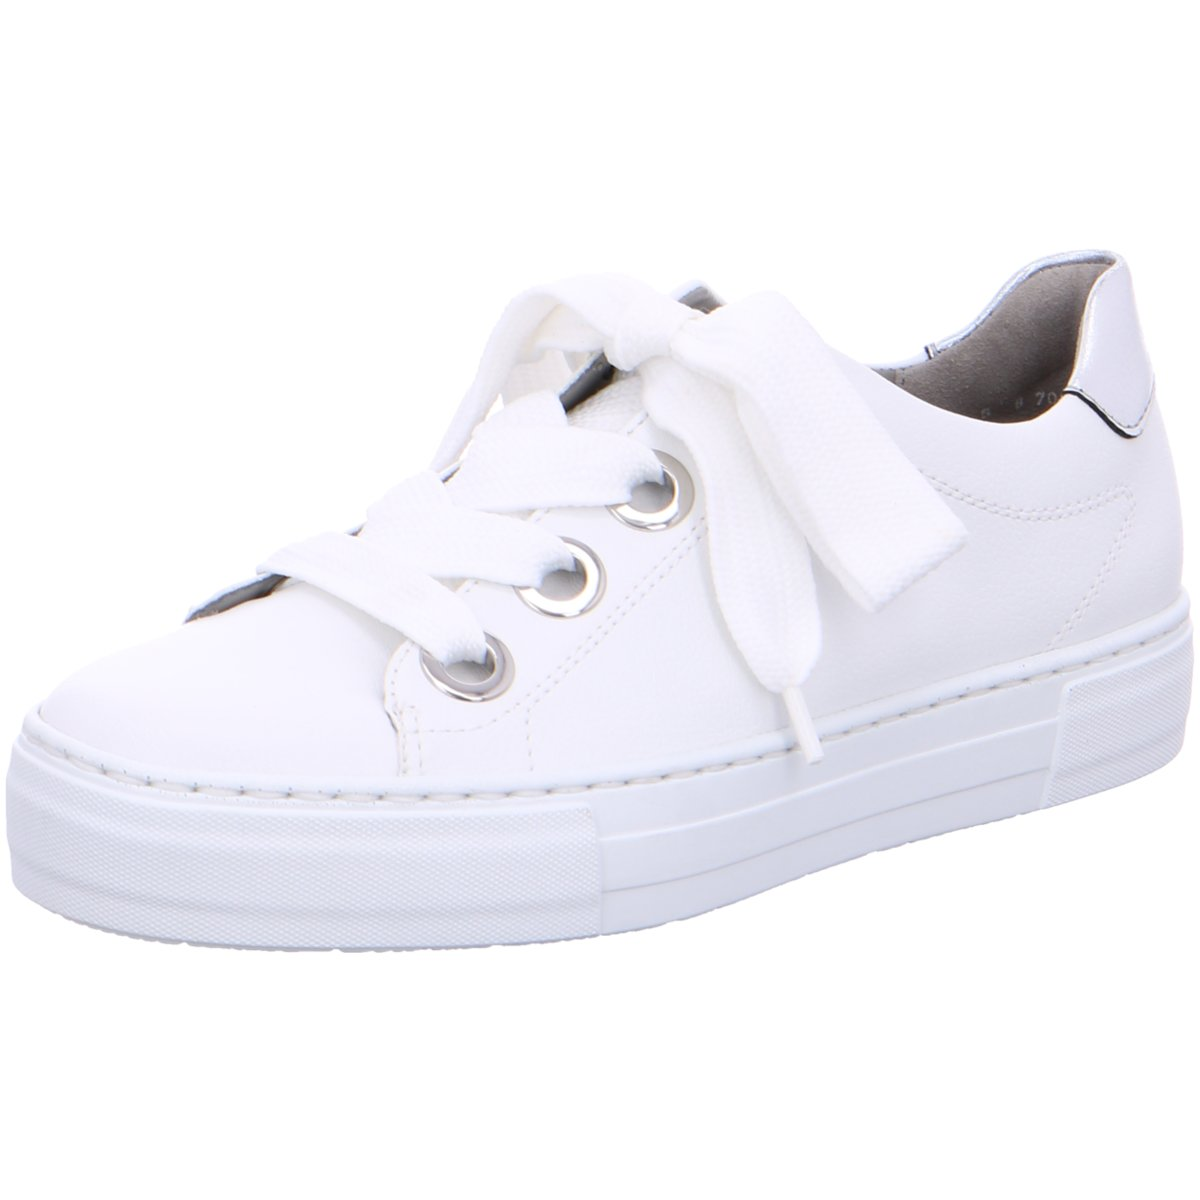 promo code b51c4 8bbe3 Nike SB SB SB Delta Force Vulc 942237-001 Skateboard Skating Casual Shoes  Trainers 2a402e